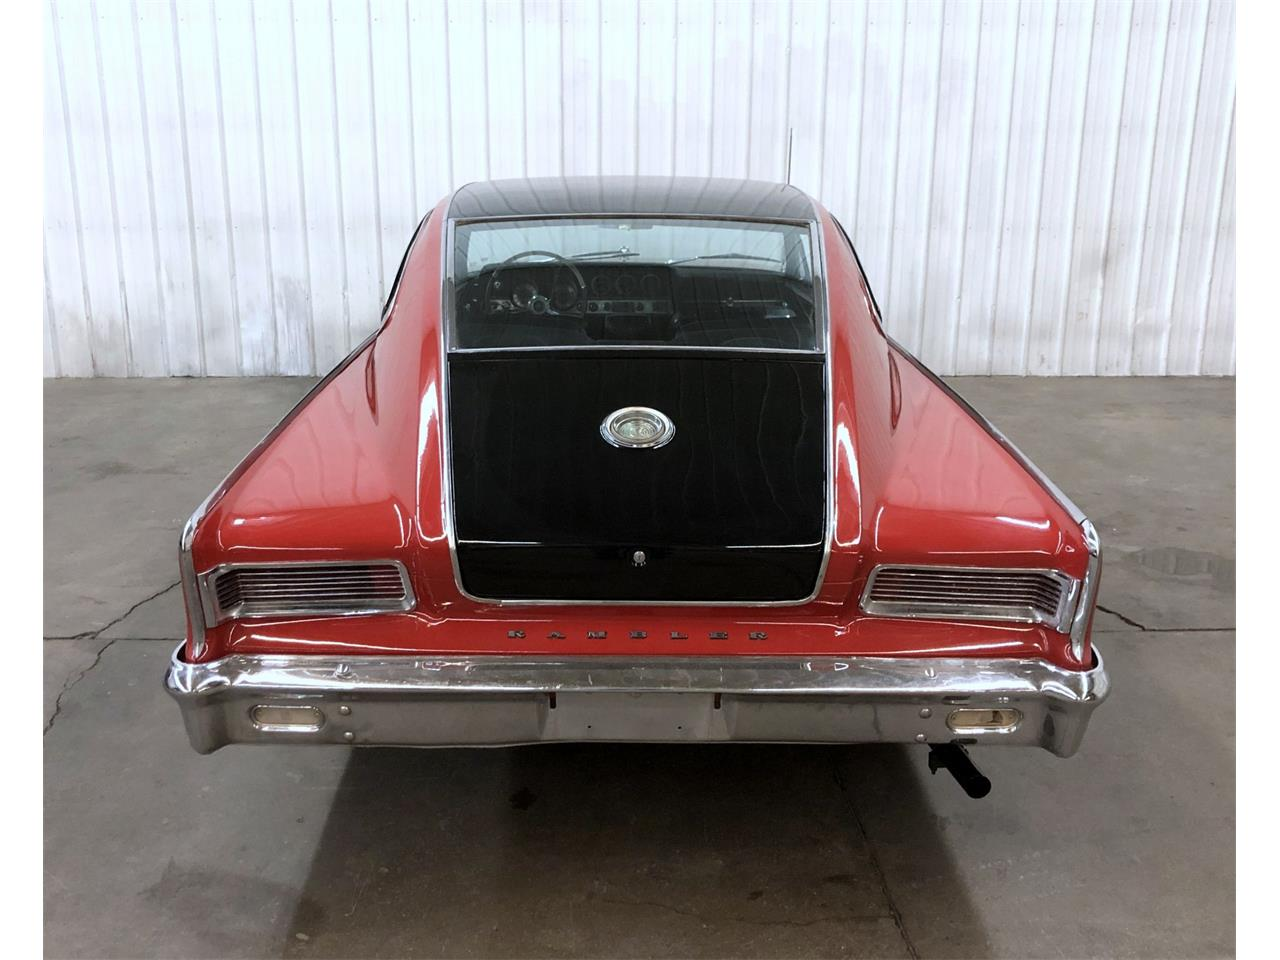 Large Picture of Classic '65 Rambler Marlin located in Minnesota - $14,950.00 Offered by Silver Creek Classics - PQKT